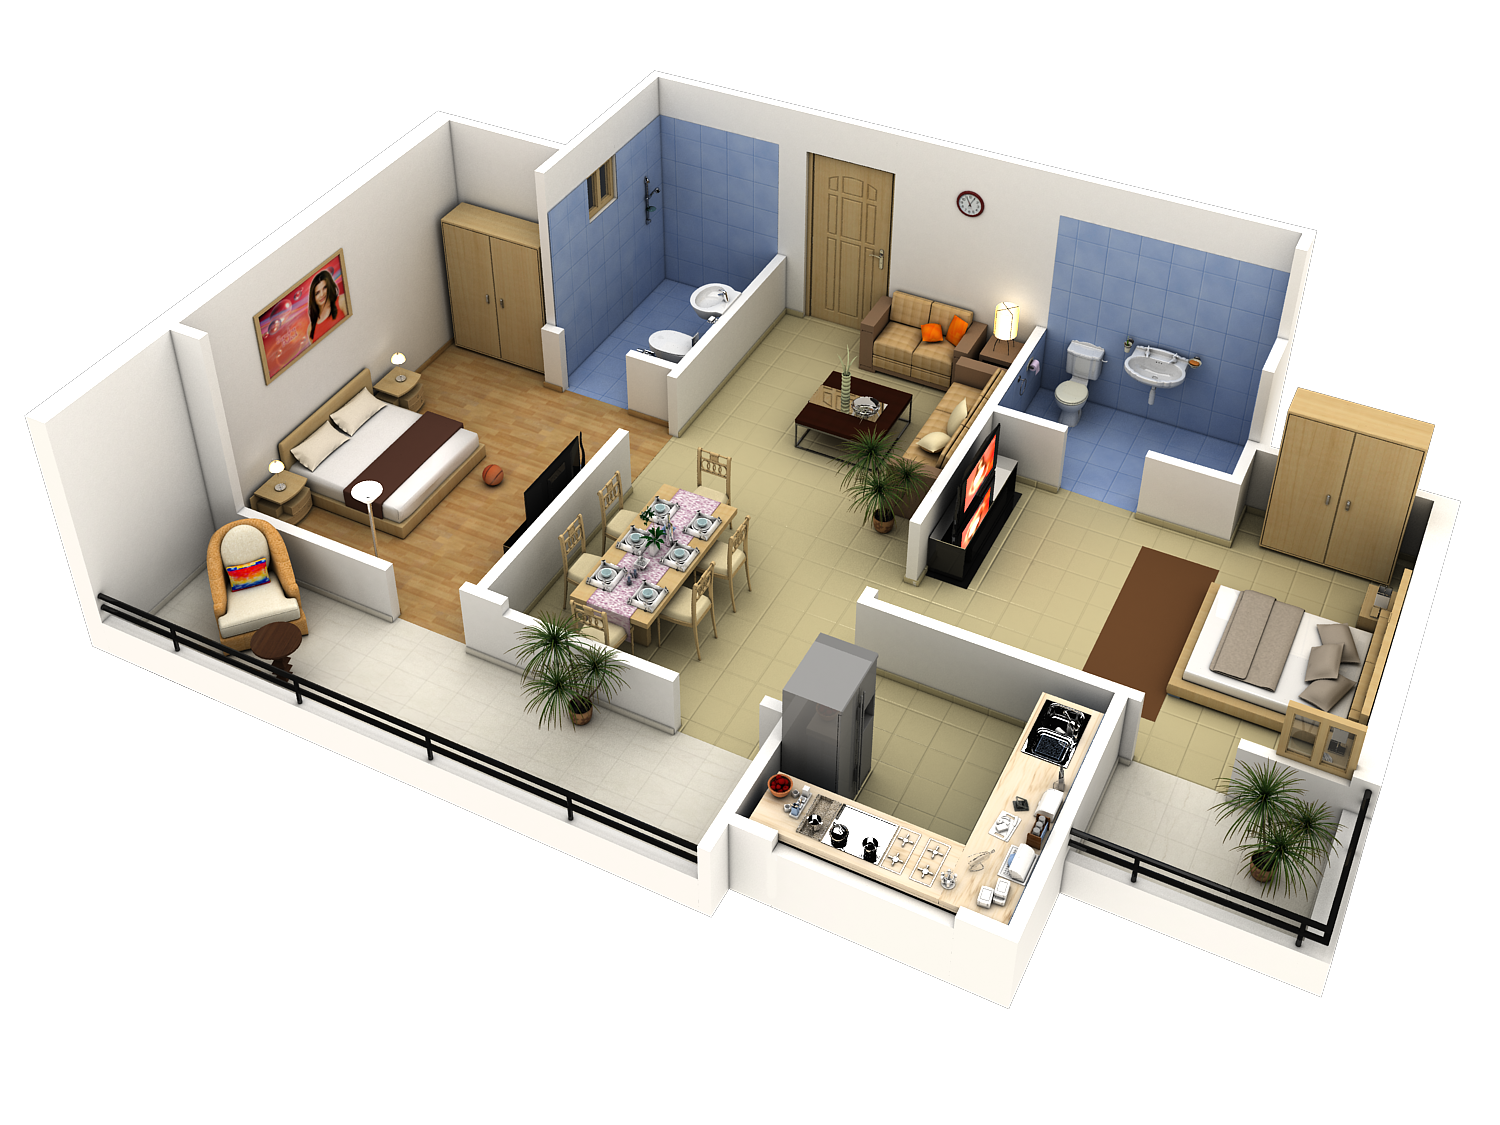 Apartment Floor Plan Cad Block Design Ideas